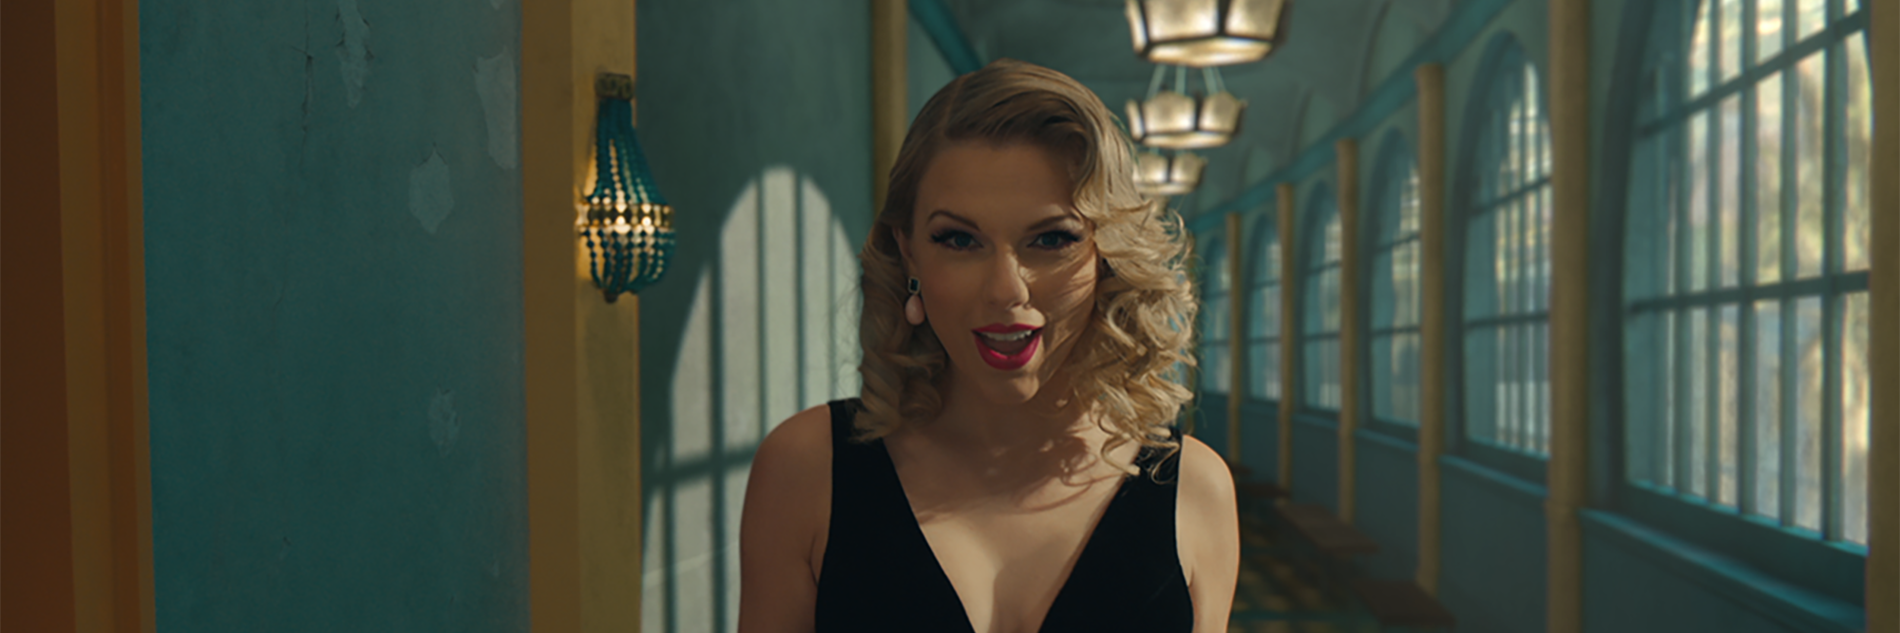 """Taylor Swift """"ME!"""" ft. Brendon Urie directed by Dave Meyers"""